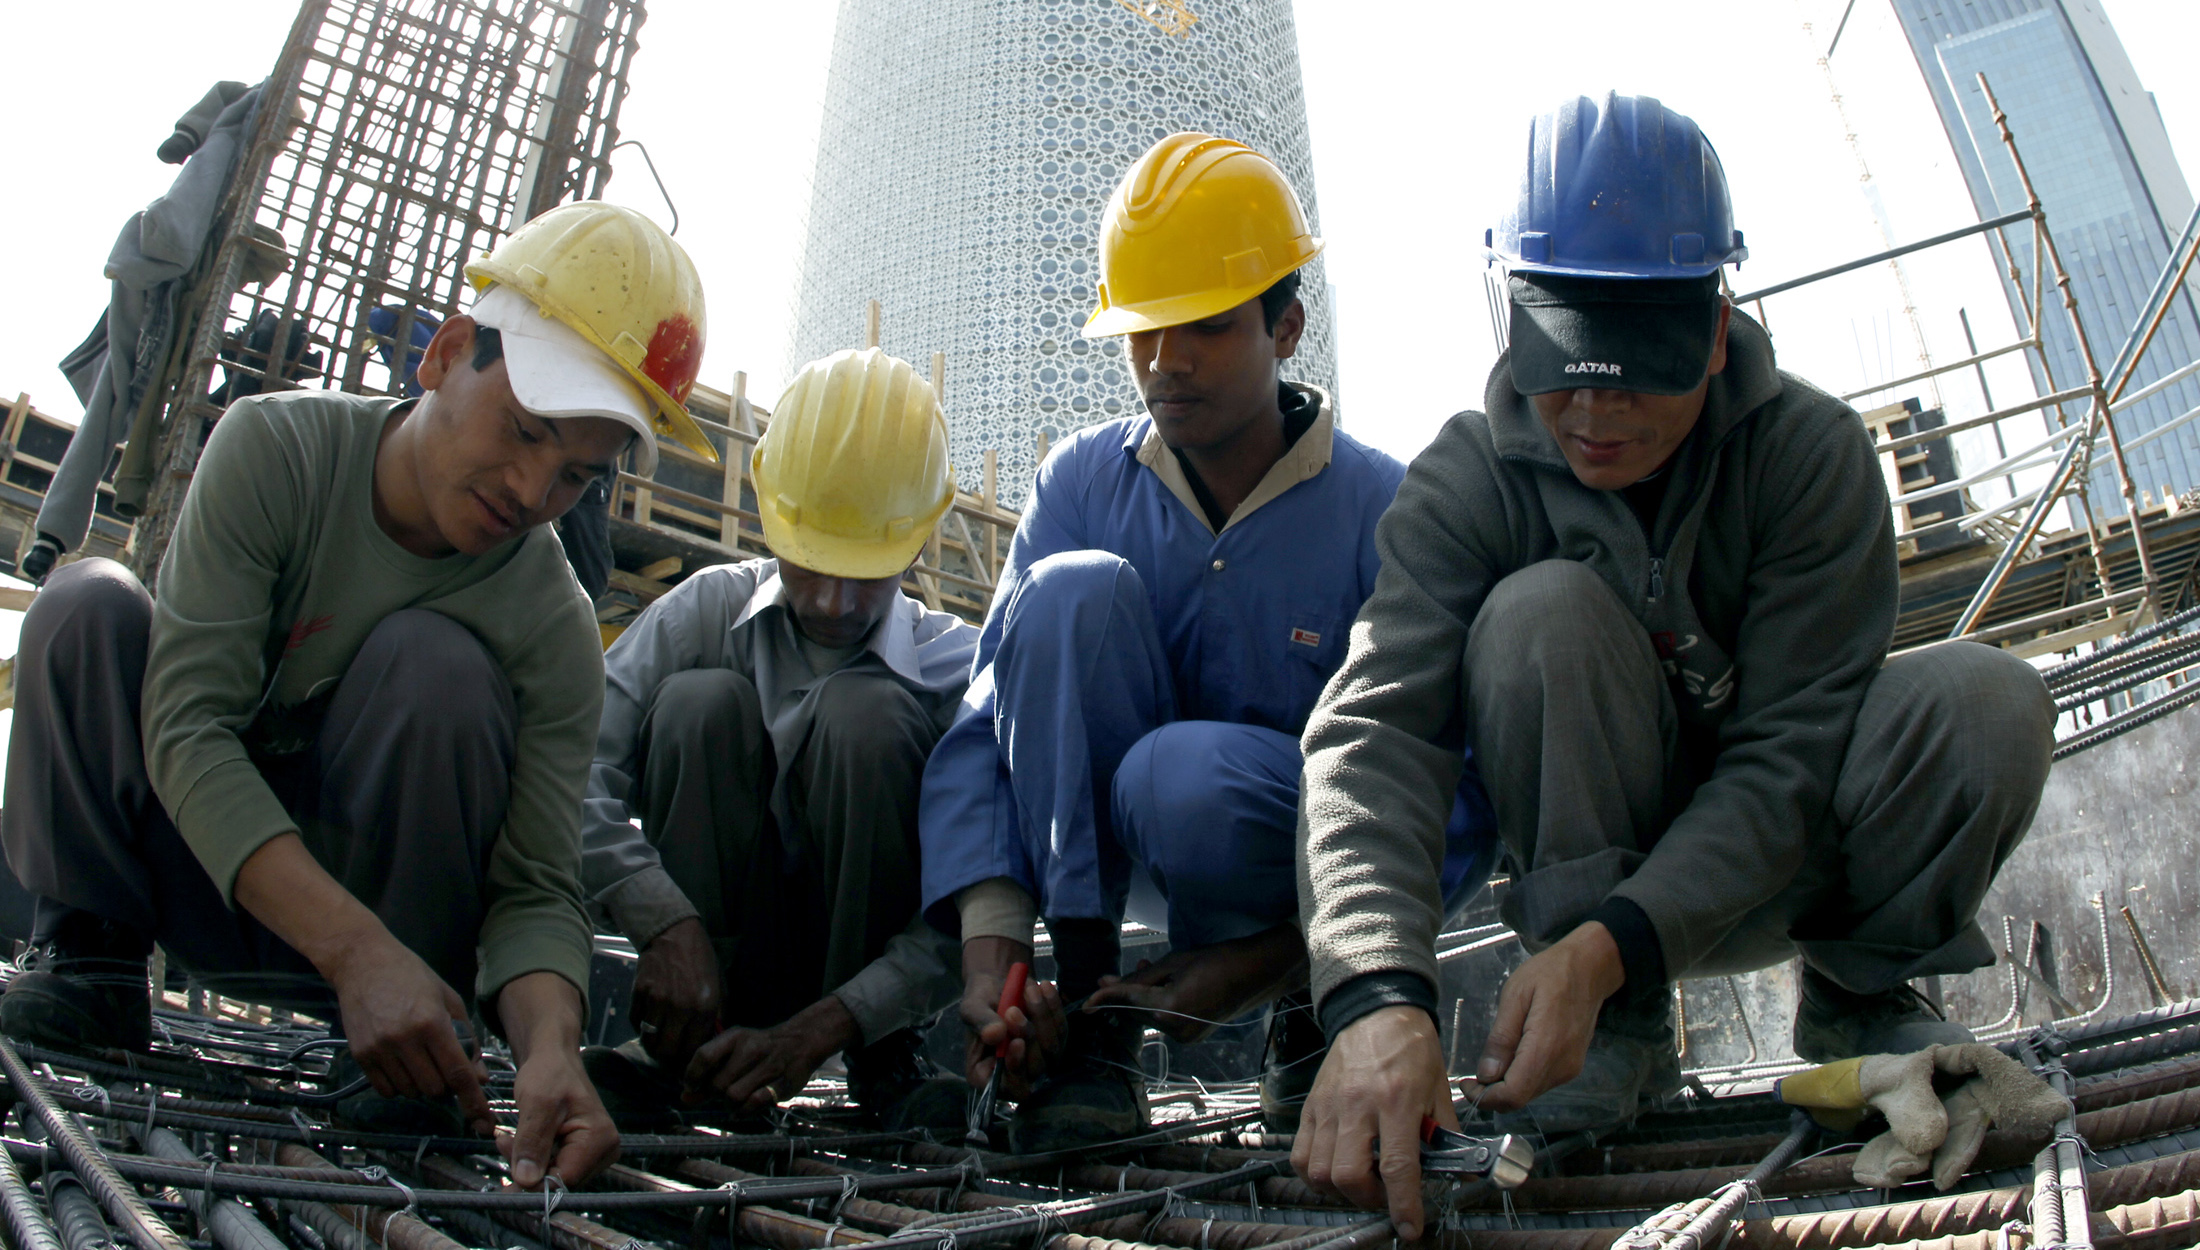 Migrant workers picture